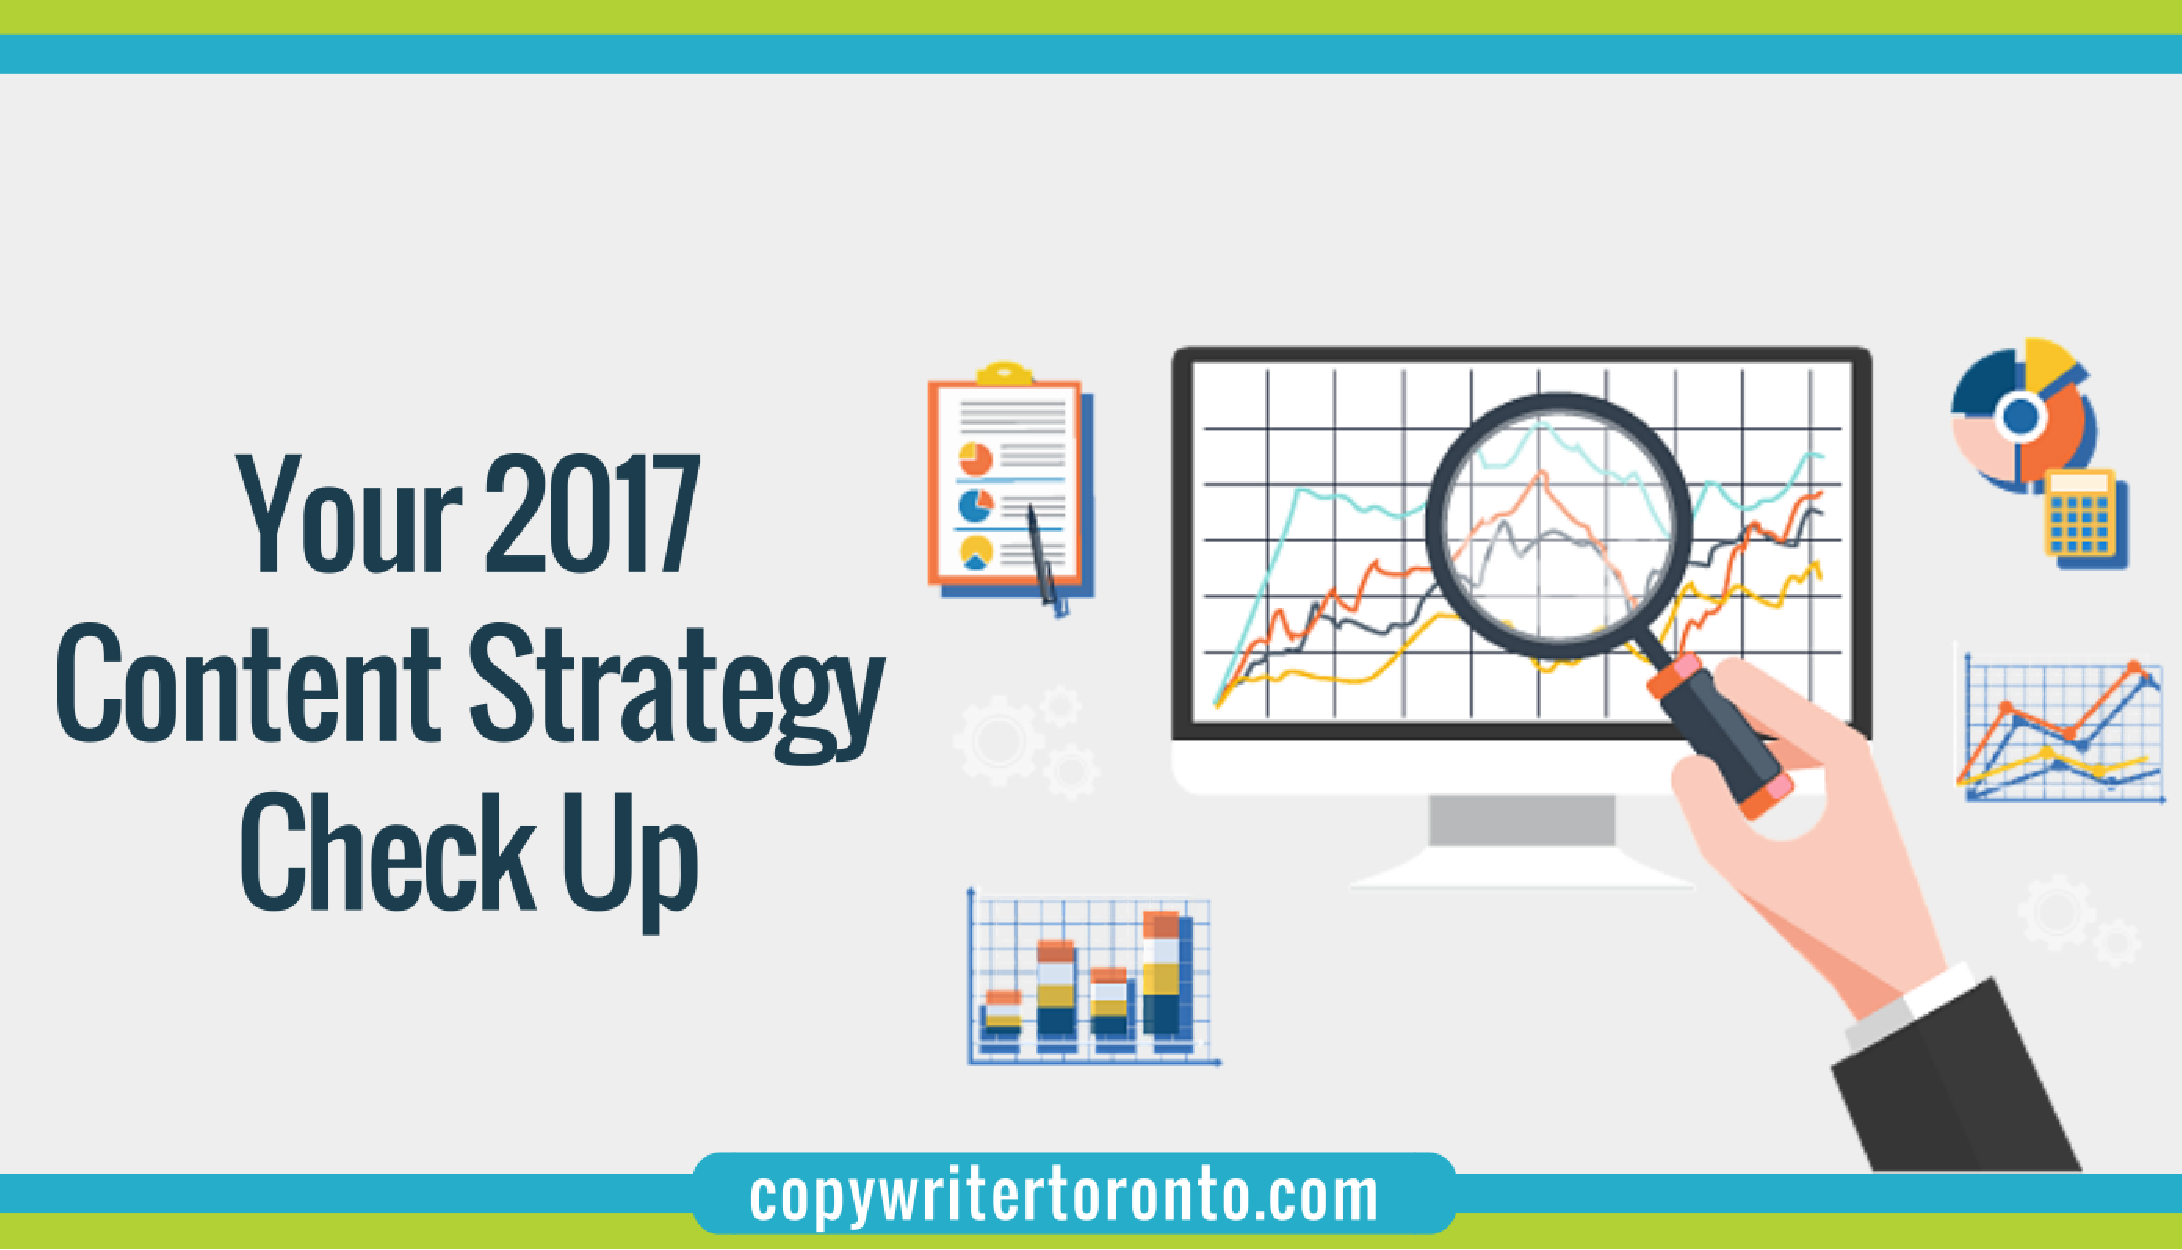 2017 Content Strategy Check Up